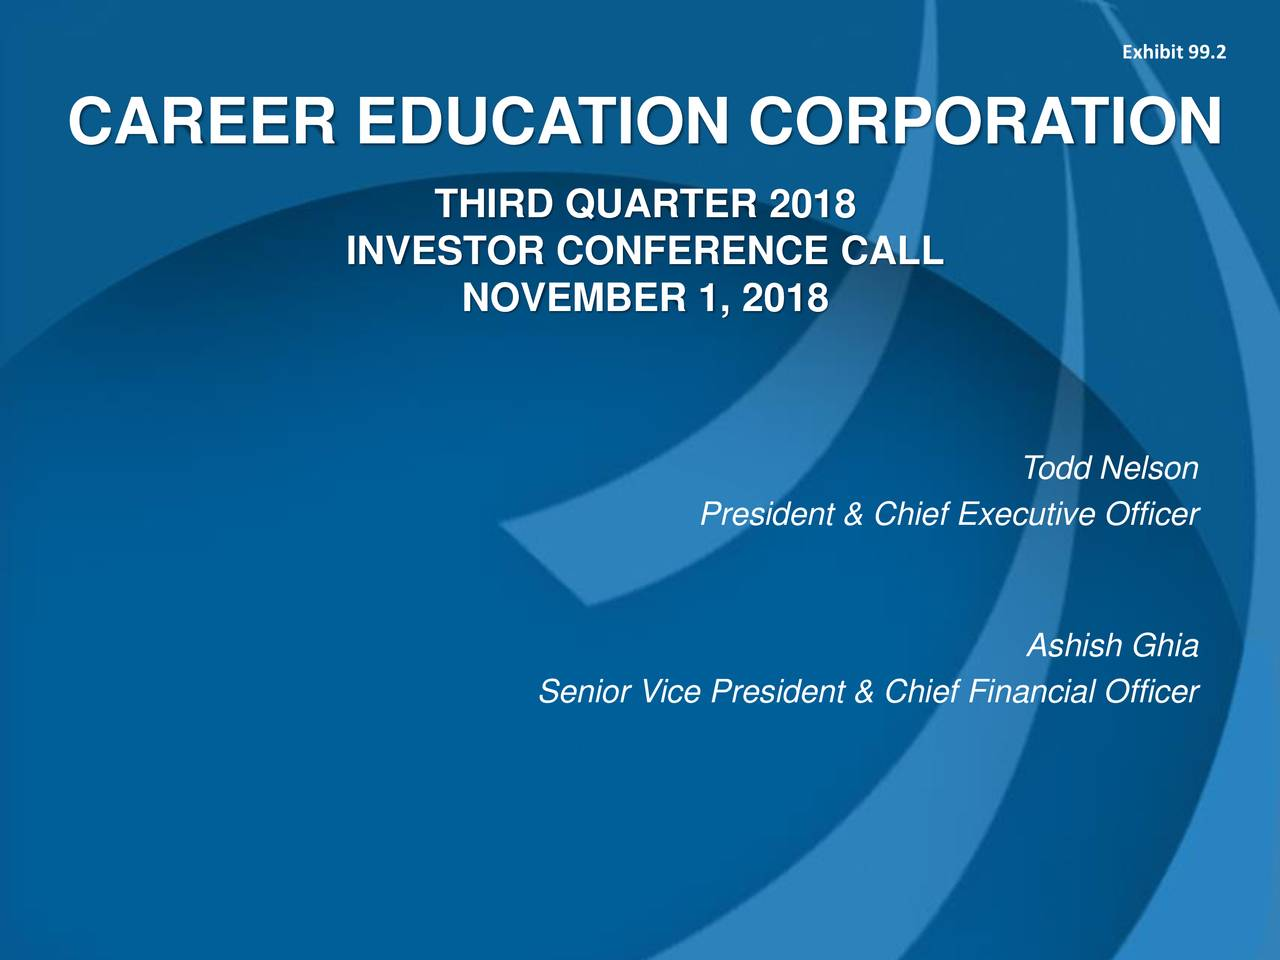 CAREER EDUCATION CORPORATION THIRD QUARTER 2018 INVESTOR CONFERENCE CALL NOVEMBER 1, 2018 Todd Nelson President & Chief Executive Officer Ashish Ghia Senior Vice President & Chief Financial Officer